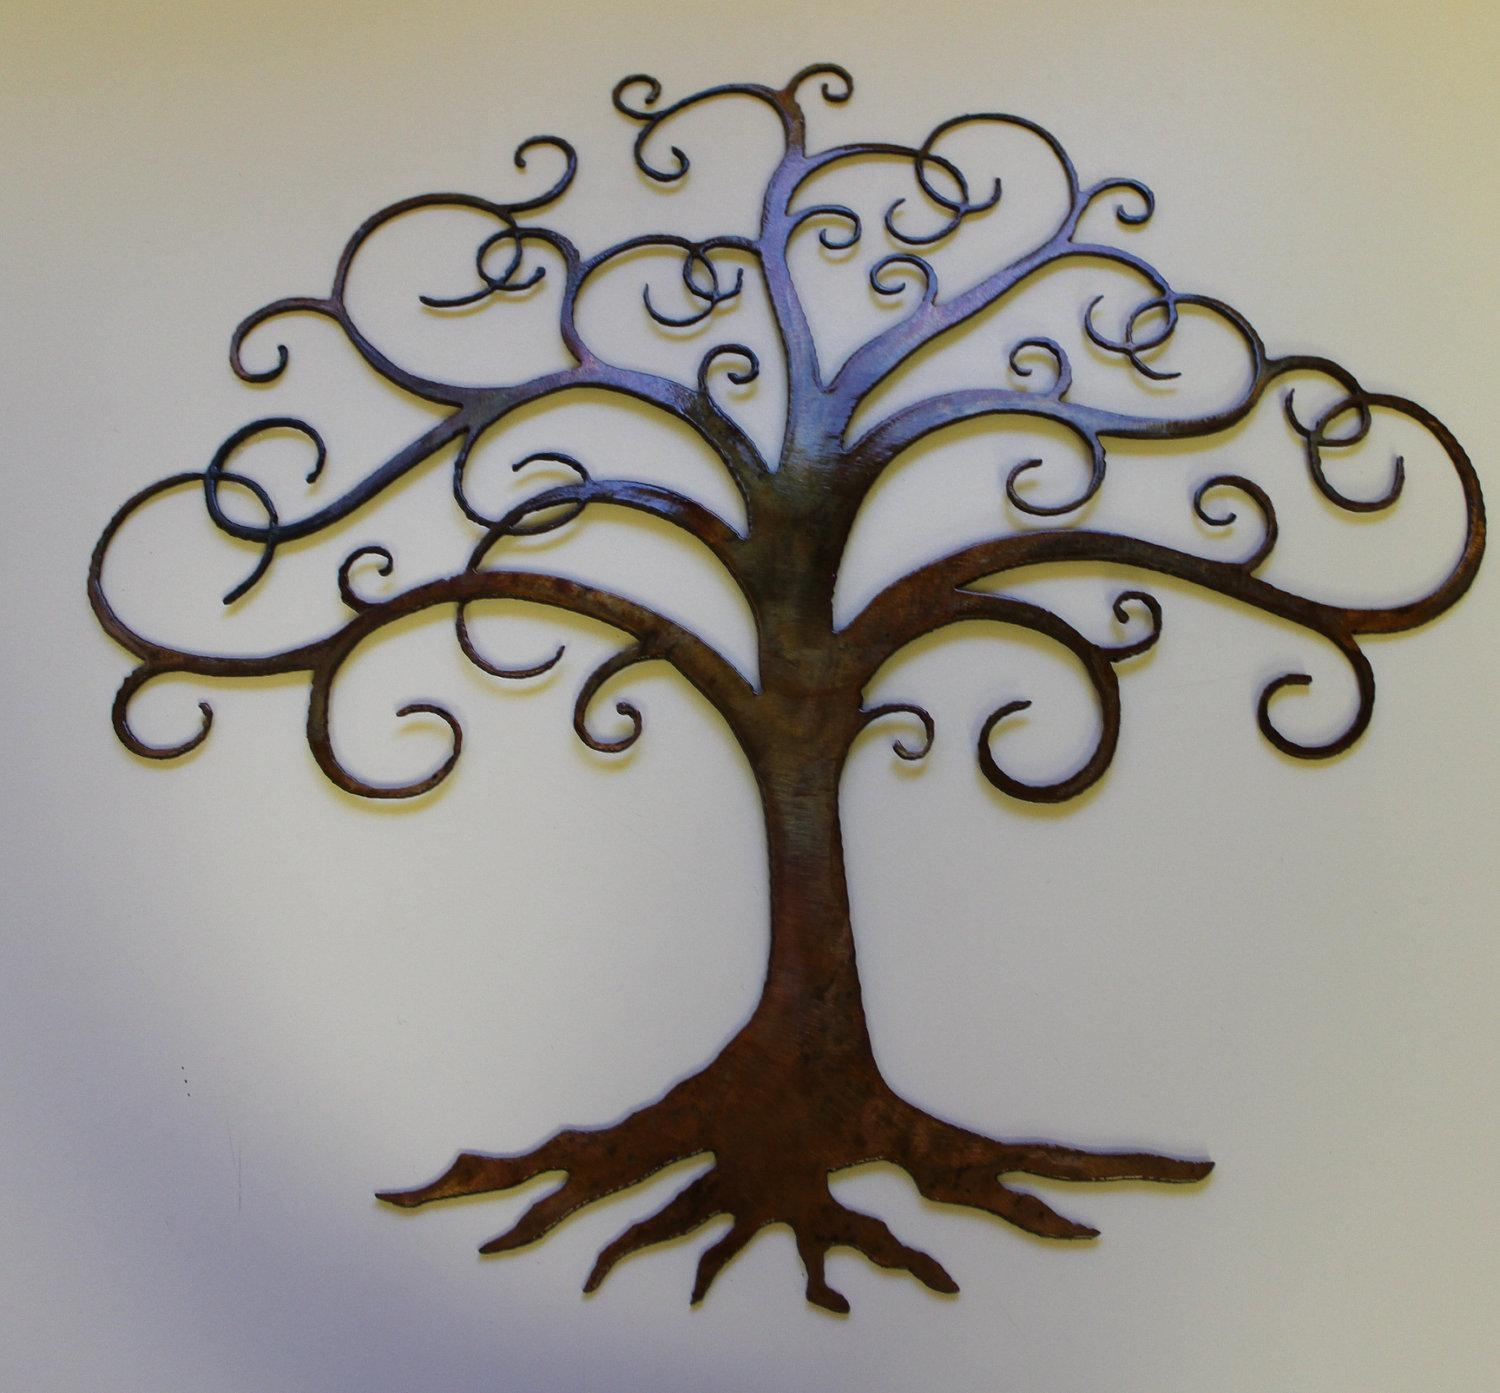 Wall Art Designs: Metal Wall Art Trees Metal Wall Art Decor Metal For Iron Art For Walls (View 14 of 20)